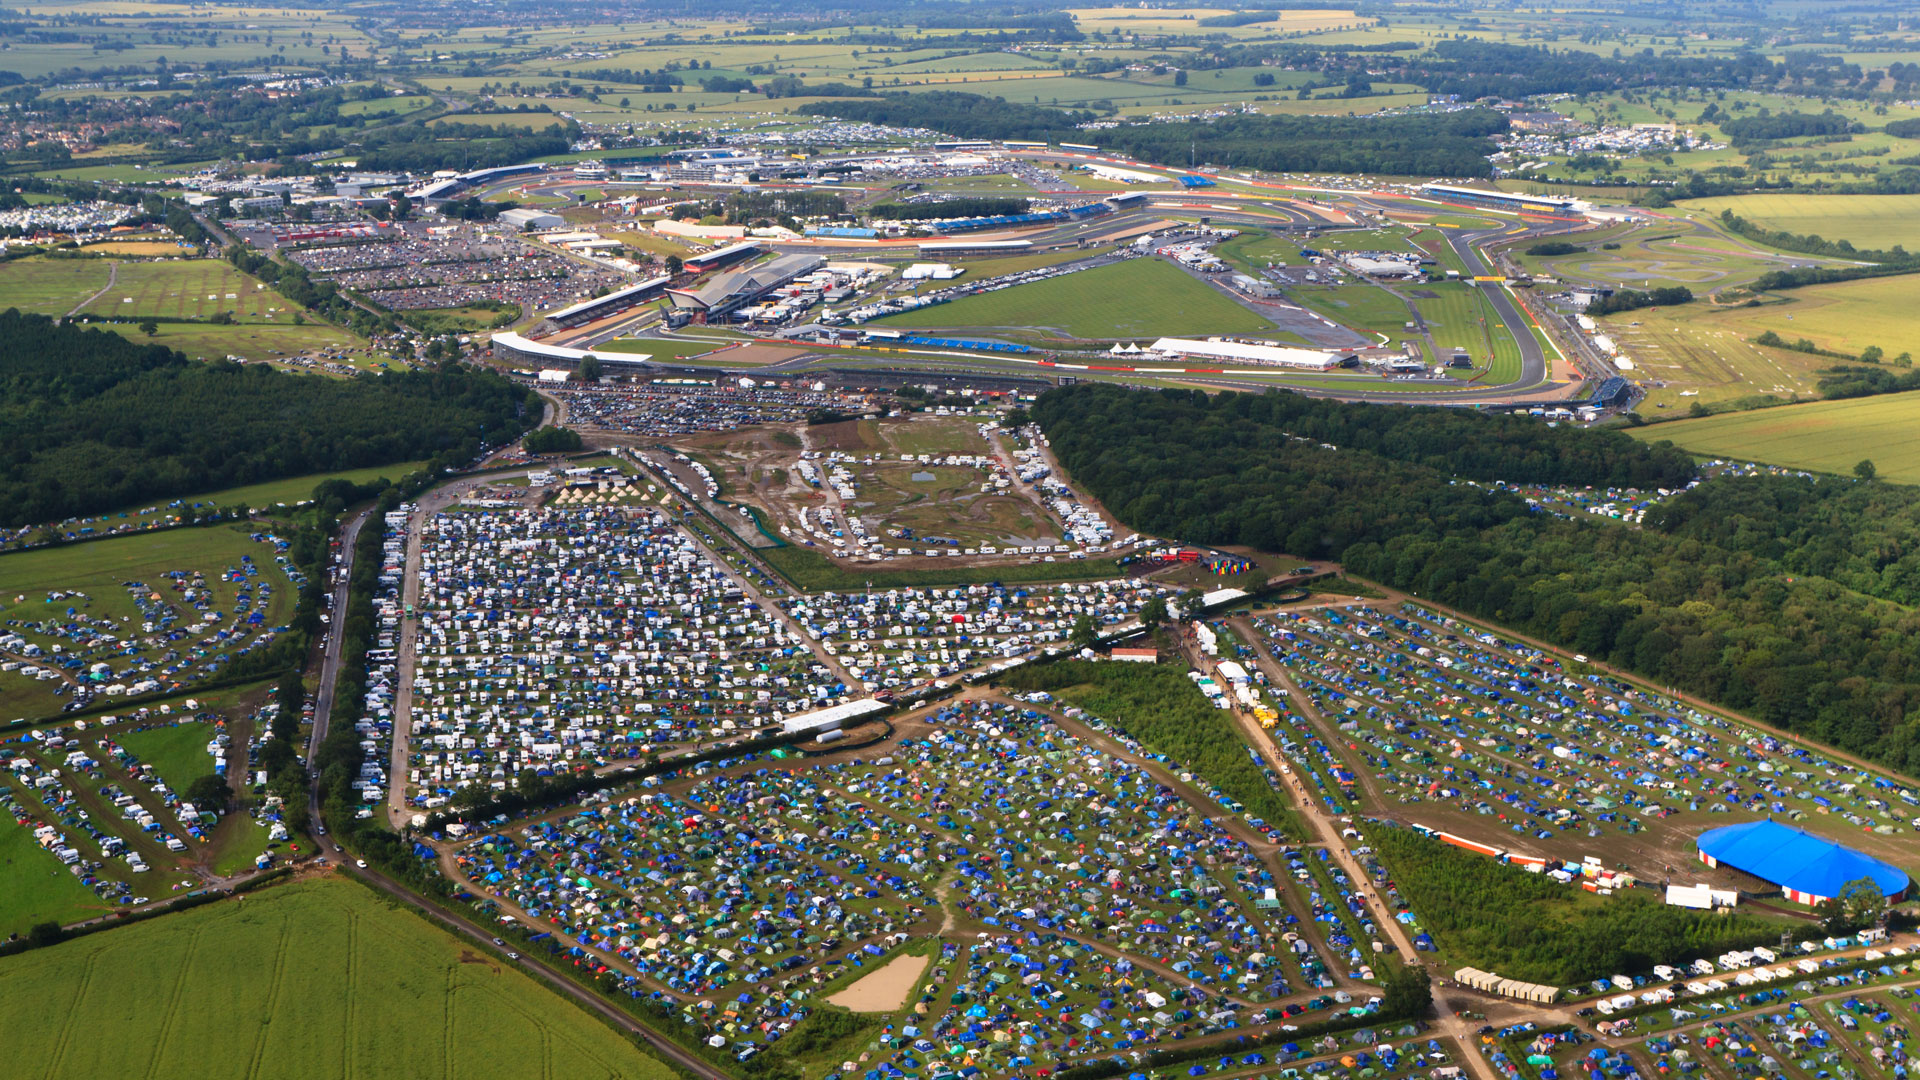 View of Silverstone during the F1 weekend